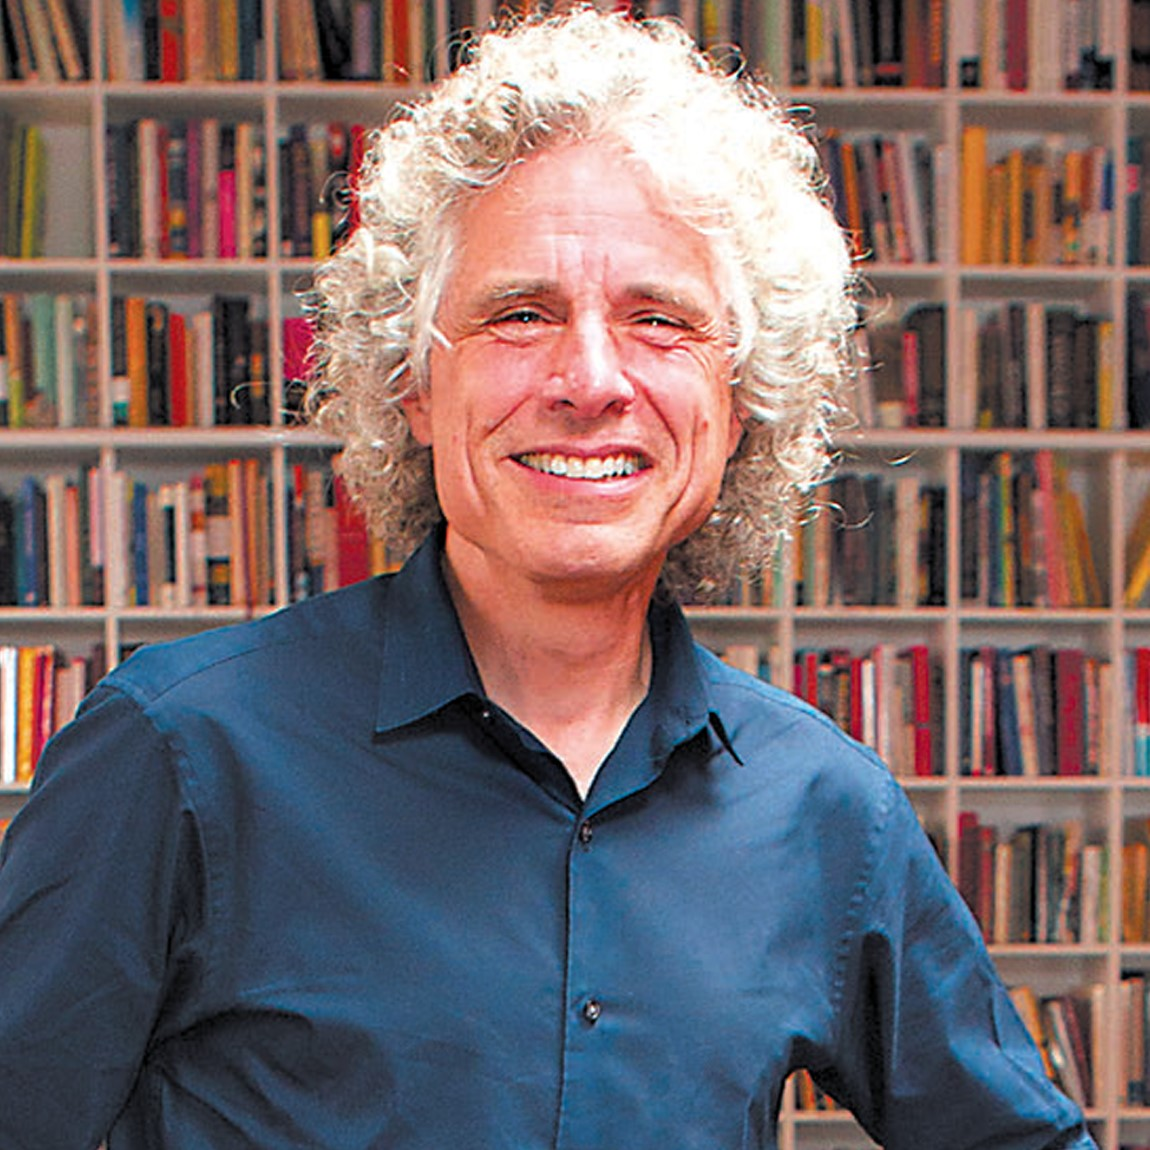 Steven Pinker, Canadian-American Cognitive Psychologist and Writer on Popular Science